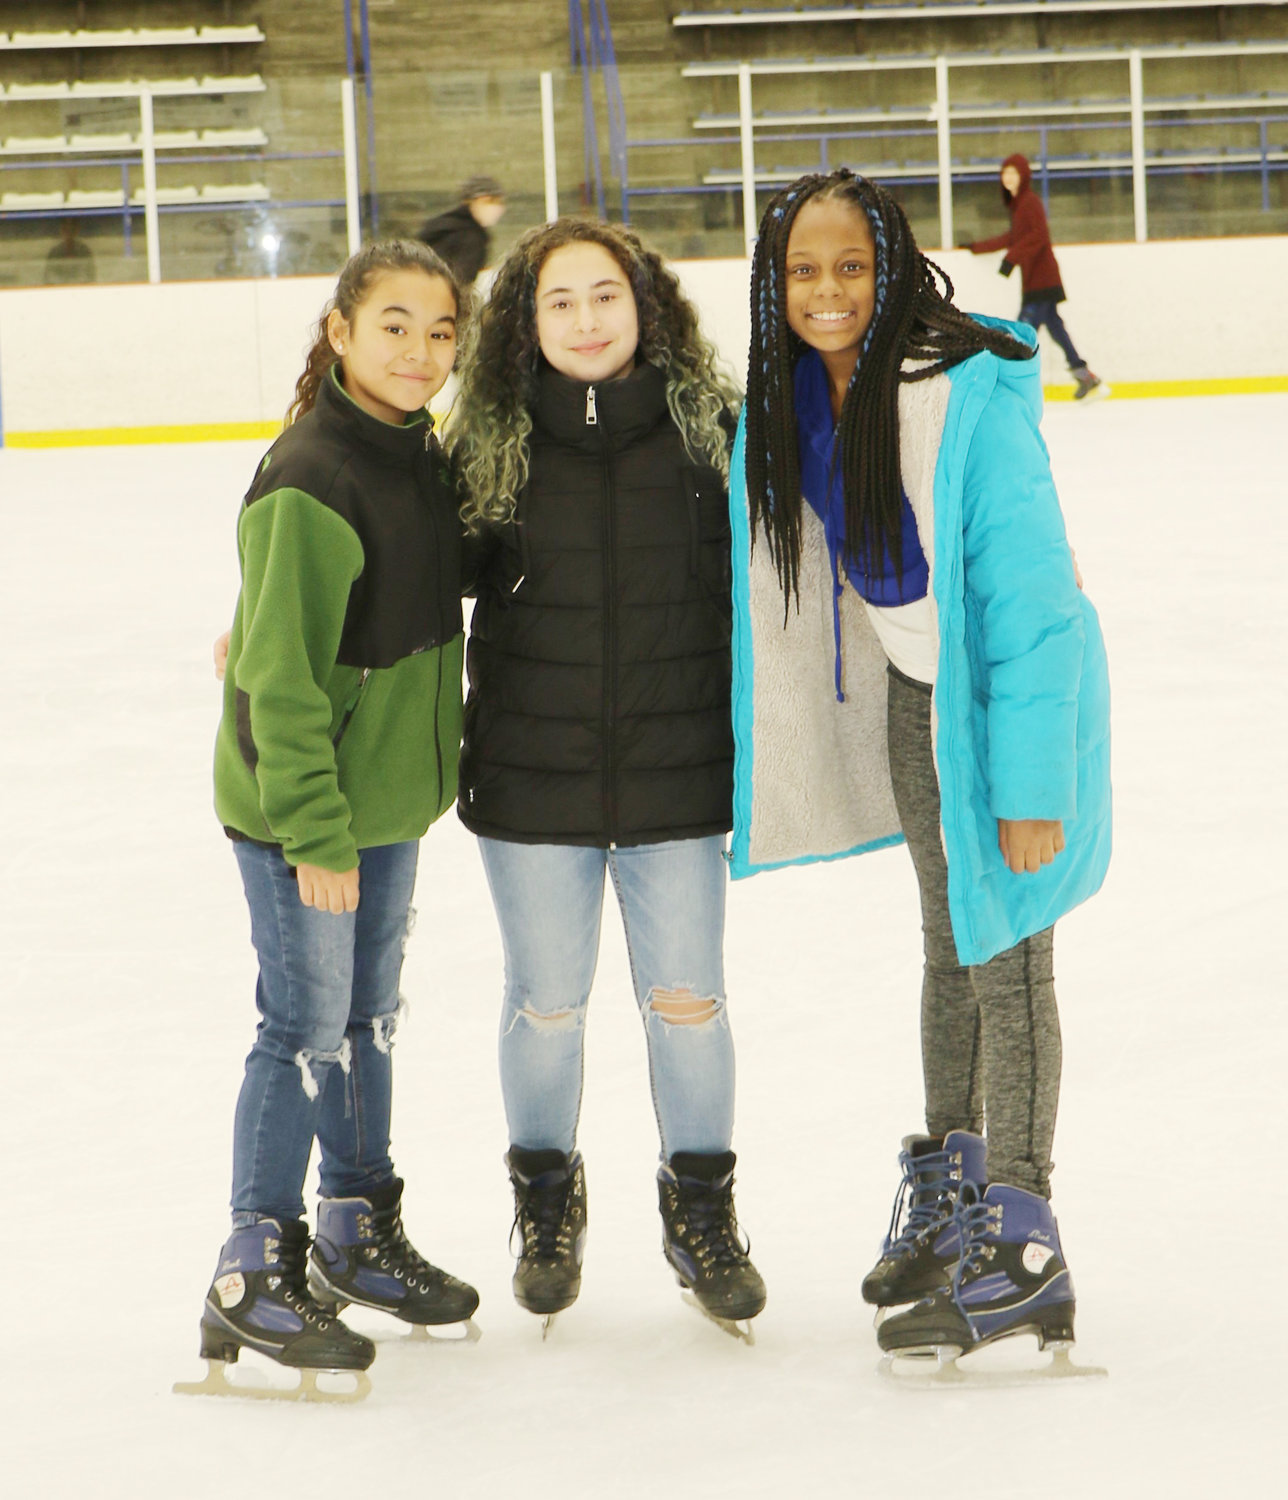 Eliana Bitten, left, Emily Mendoza and Spencea Grause skated together at Tween Nite Out.